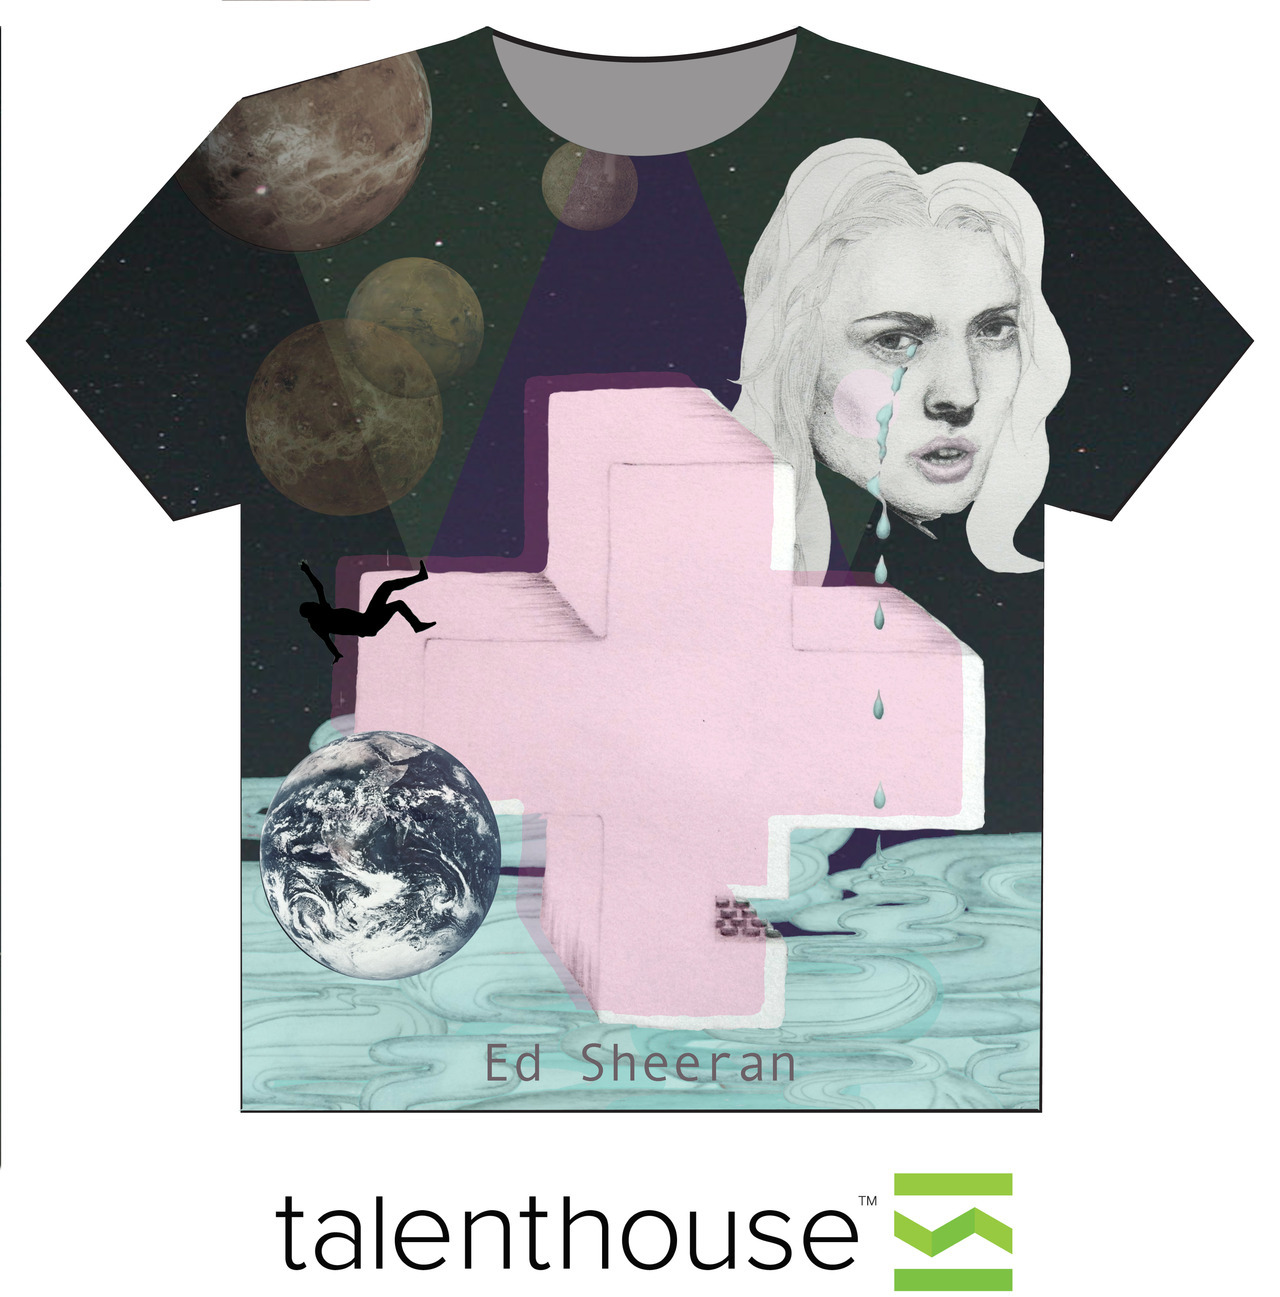 my design for a t-shirt competition for Ed Sheeran, three days left to vote..please vote! http://www.talenthouse.com/creativeinvites/show/submission/detail/3PJGZ7 x